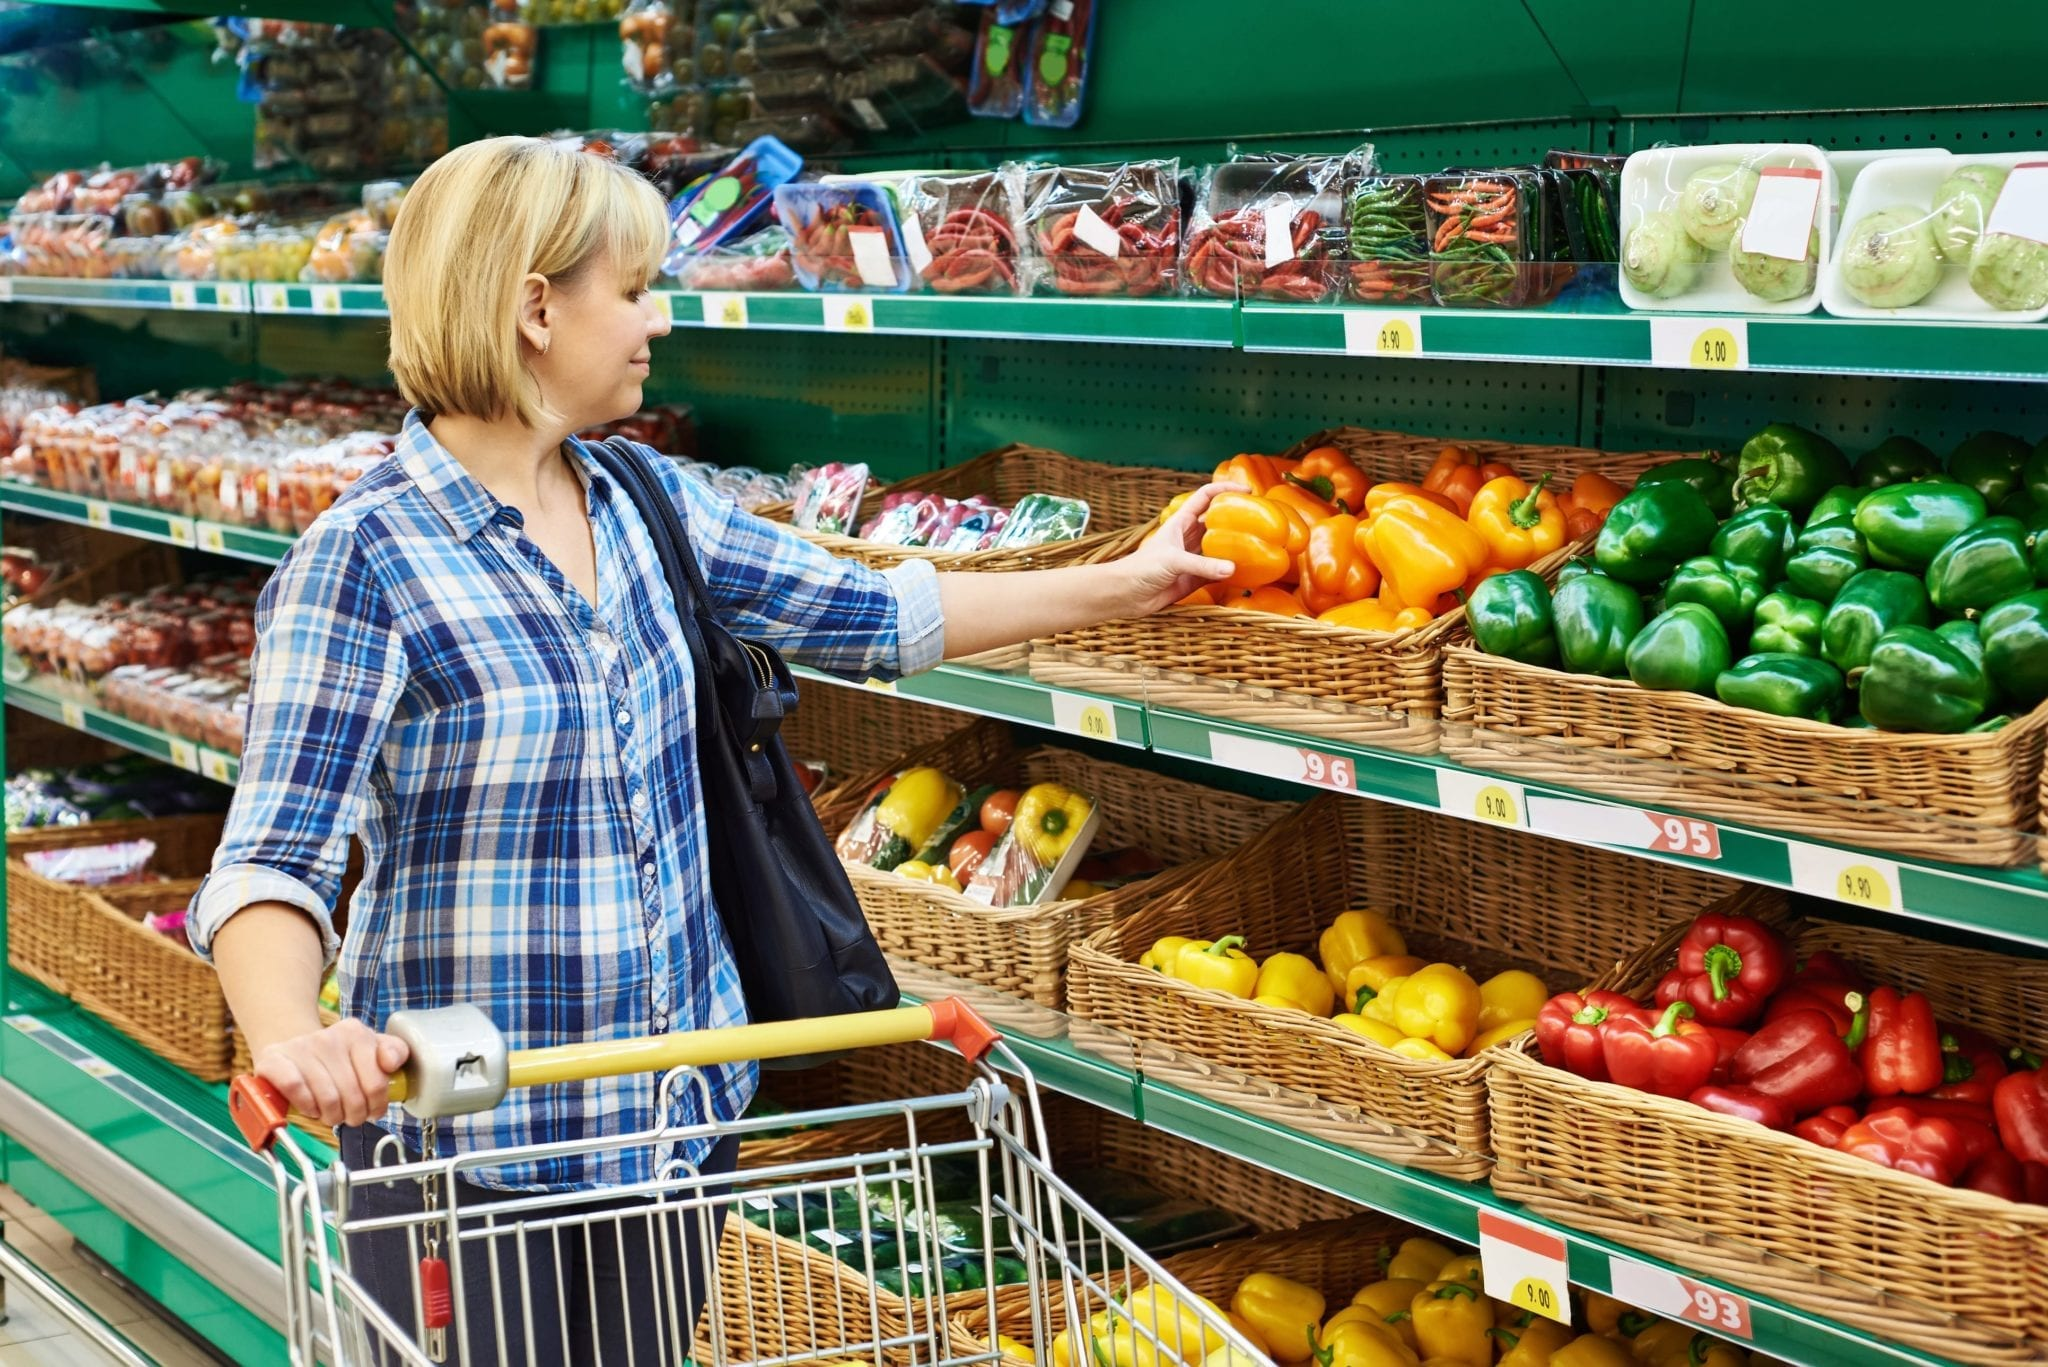 Woman buys bell peppers in store